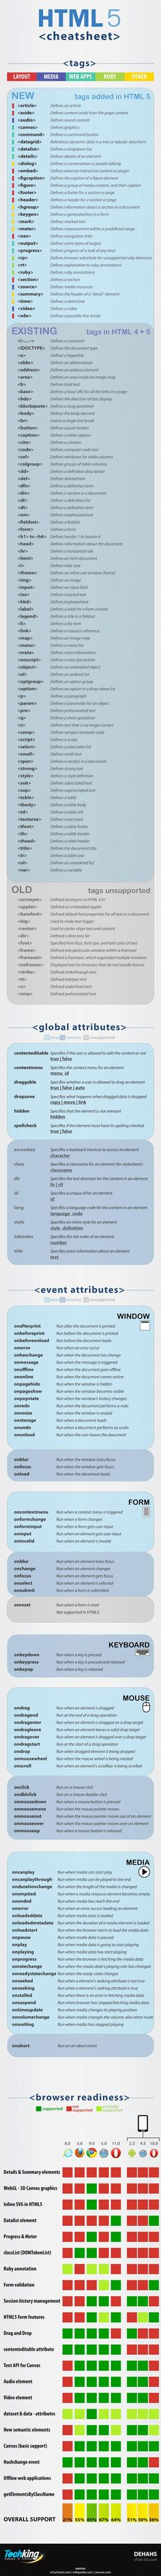 We are very pleased to present to you The Ultimate HTML5 Cheatsheet. We hope you enjoy it and find it useful.